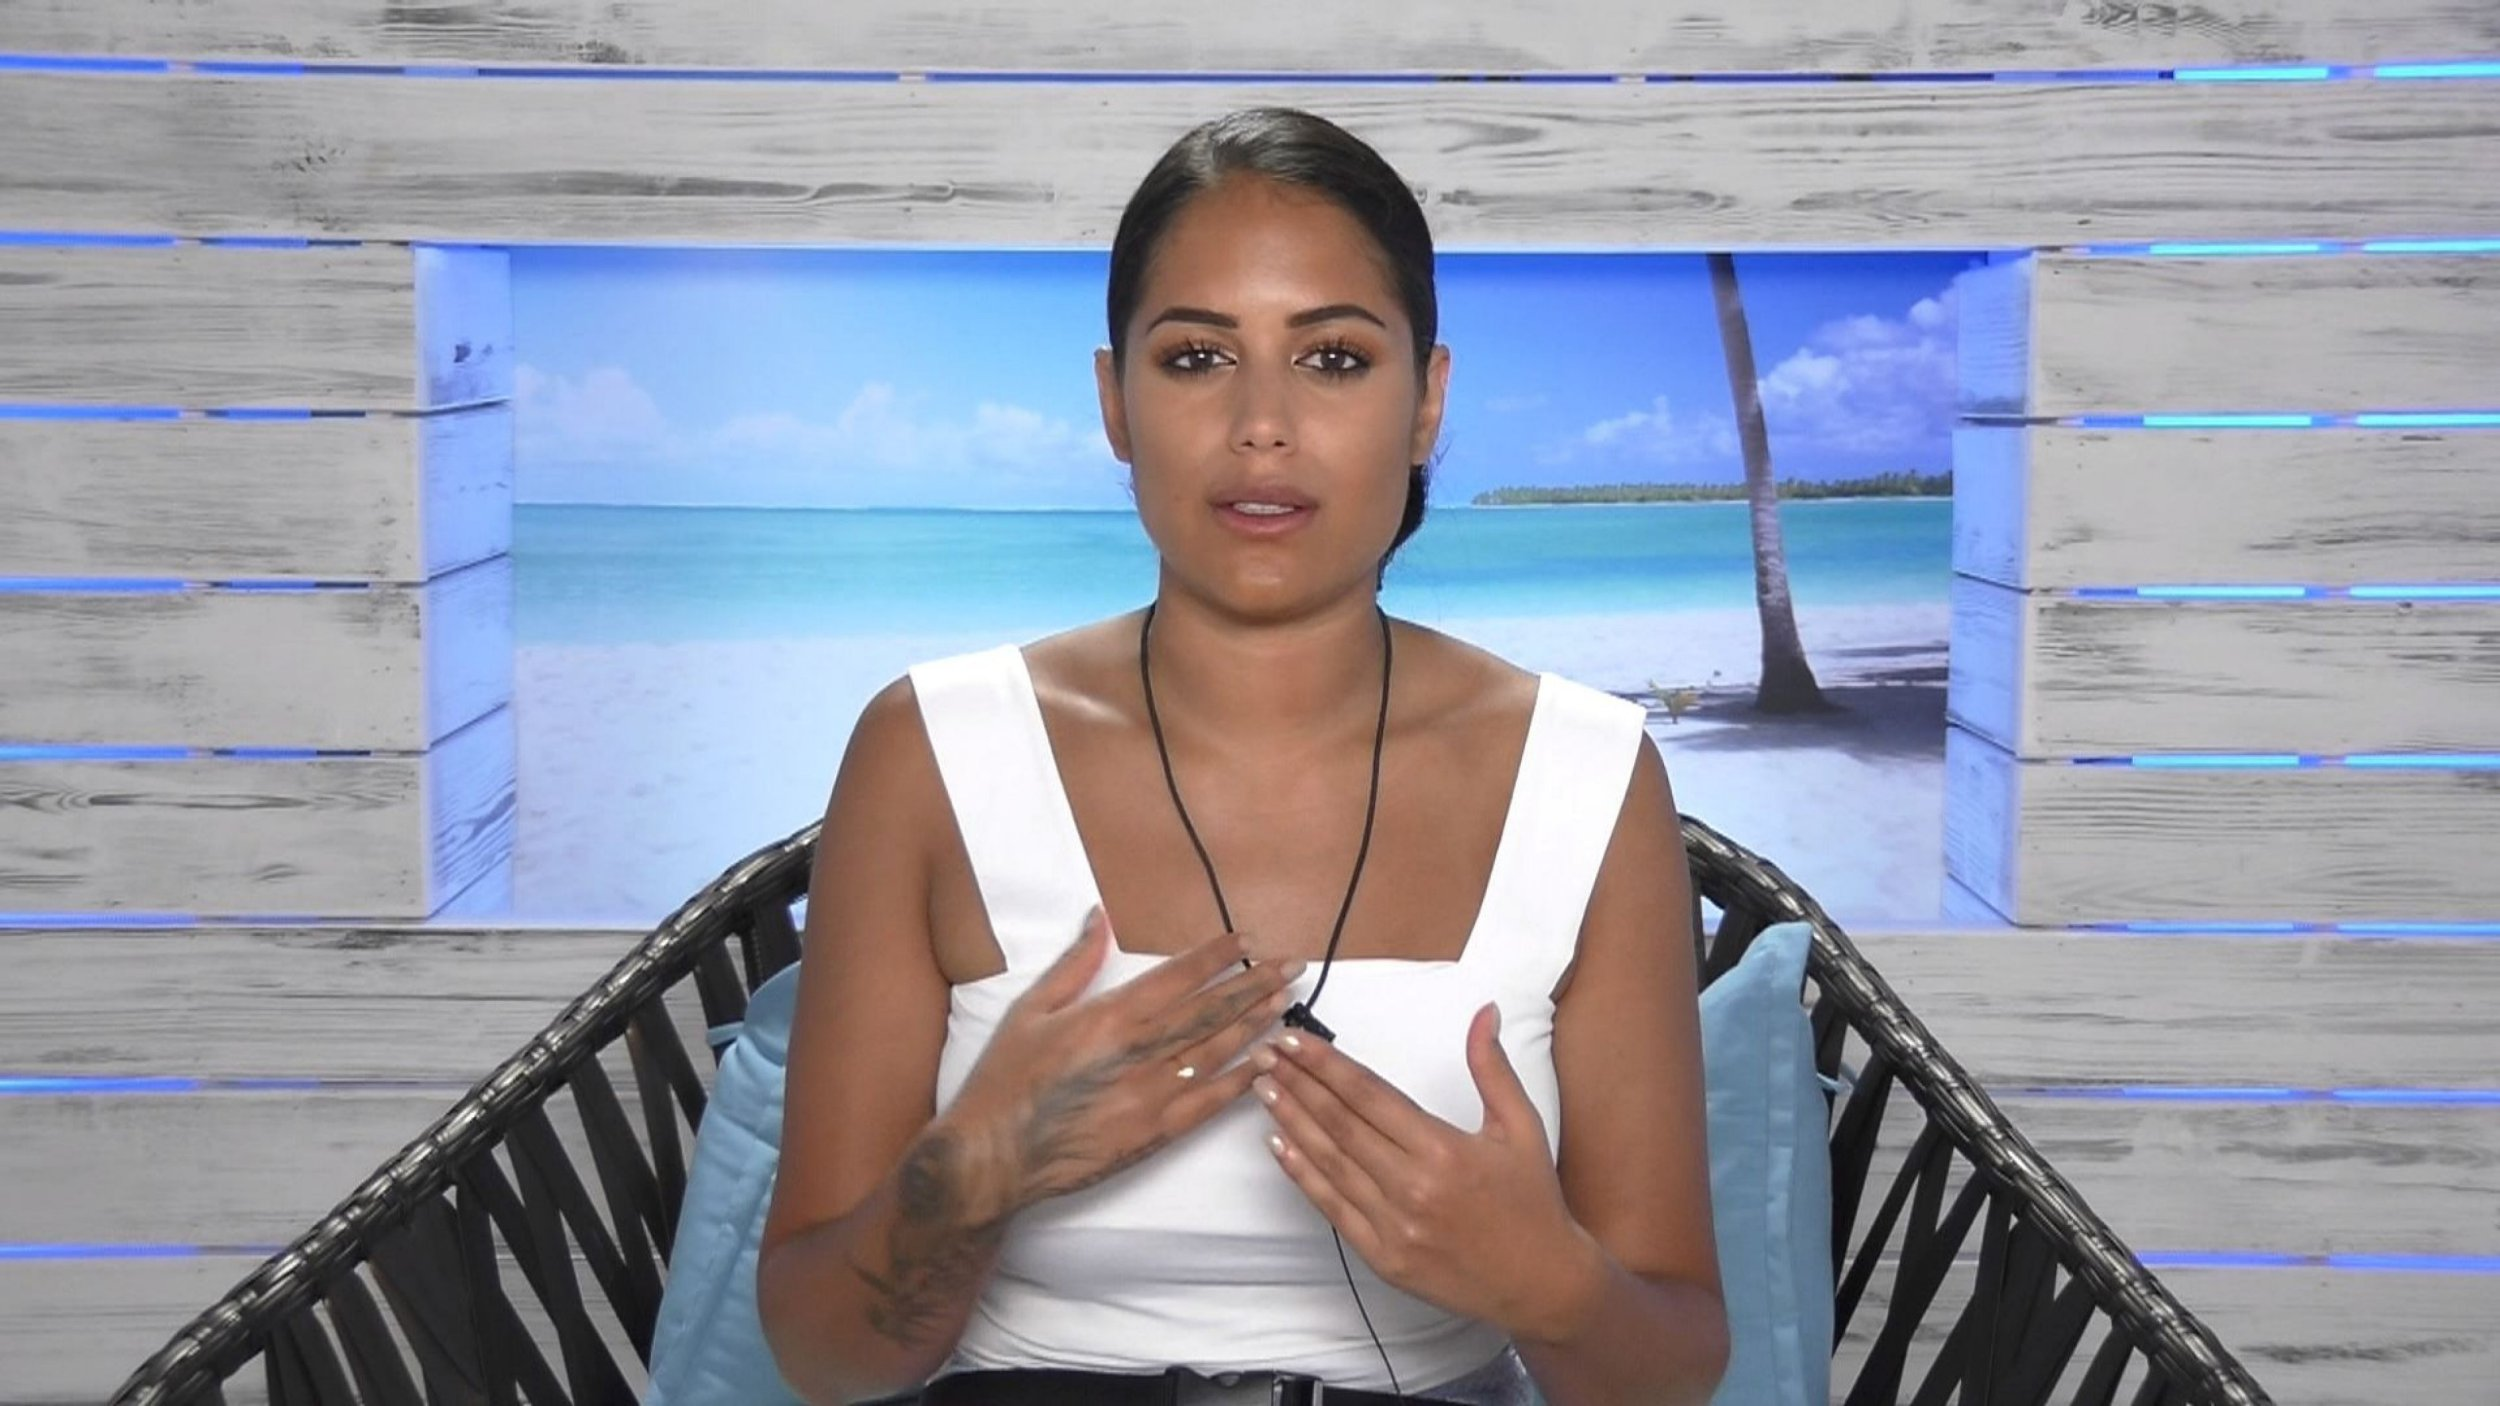 Malin Andersson calls for more support for Love Island contestants after leaving the villa